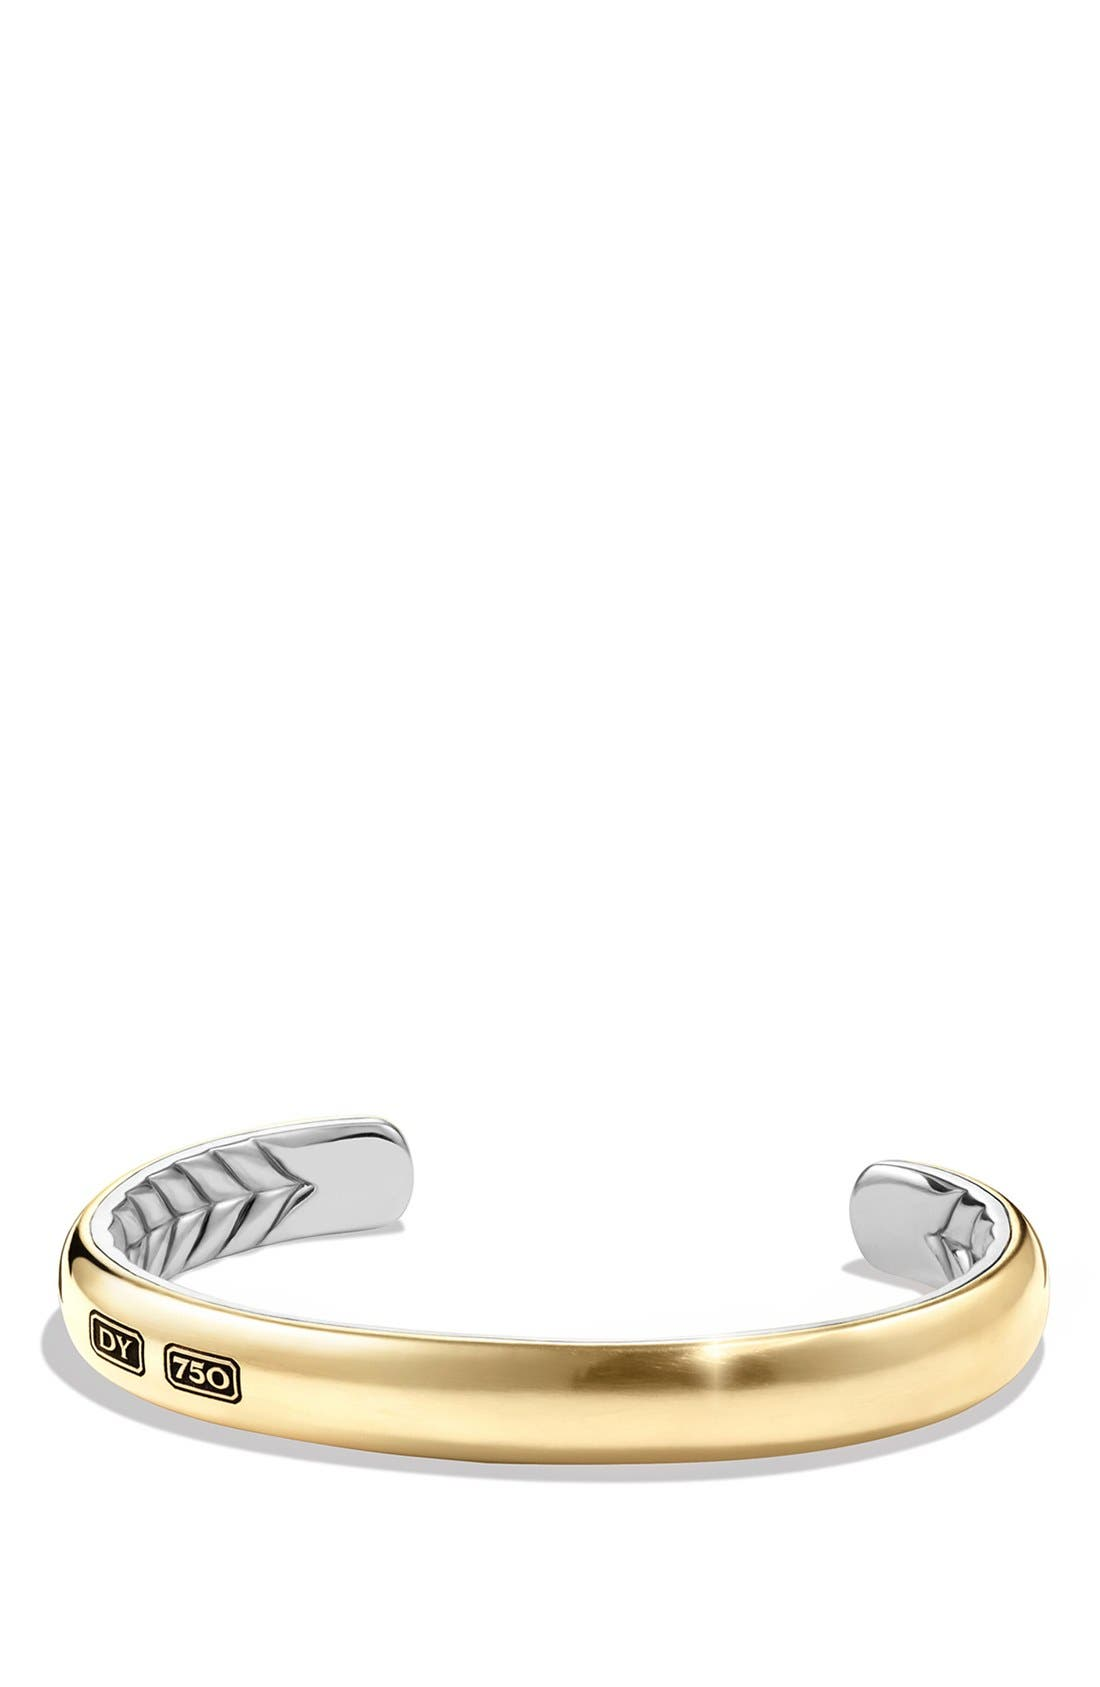 'Streamline' Cuff Bracelet with 18K Gold,                             Main thumbnail 1, color,                             Two Tone